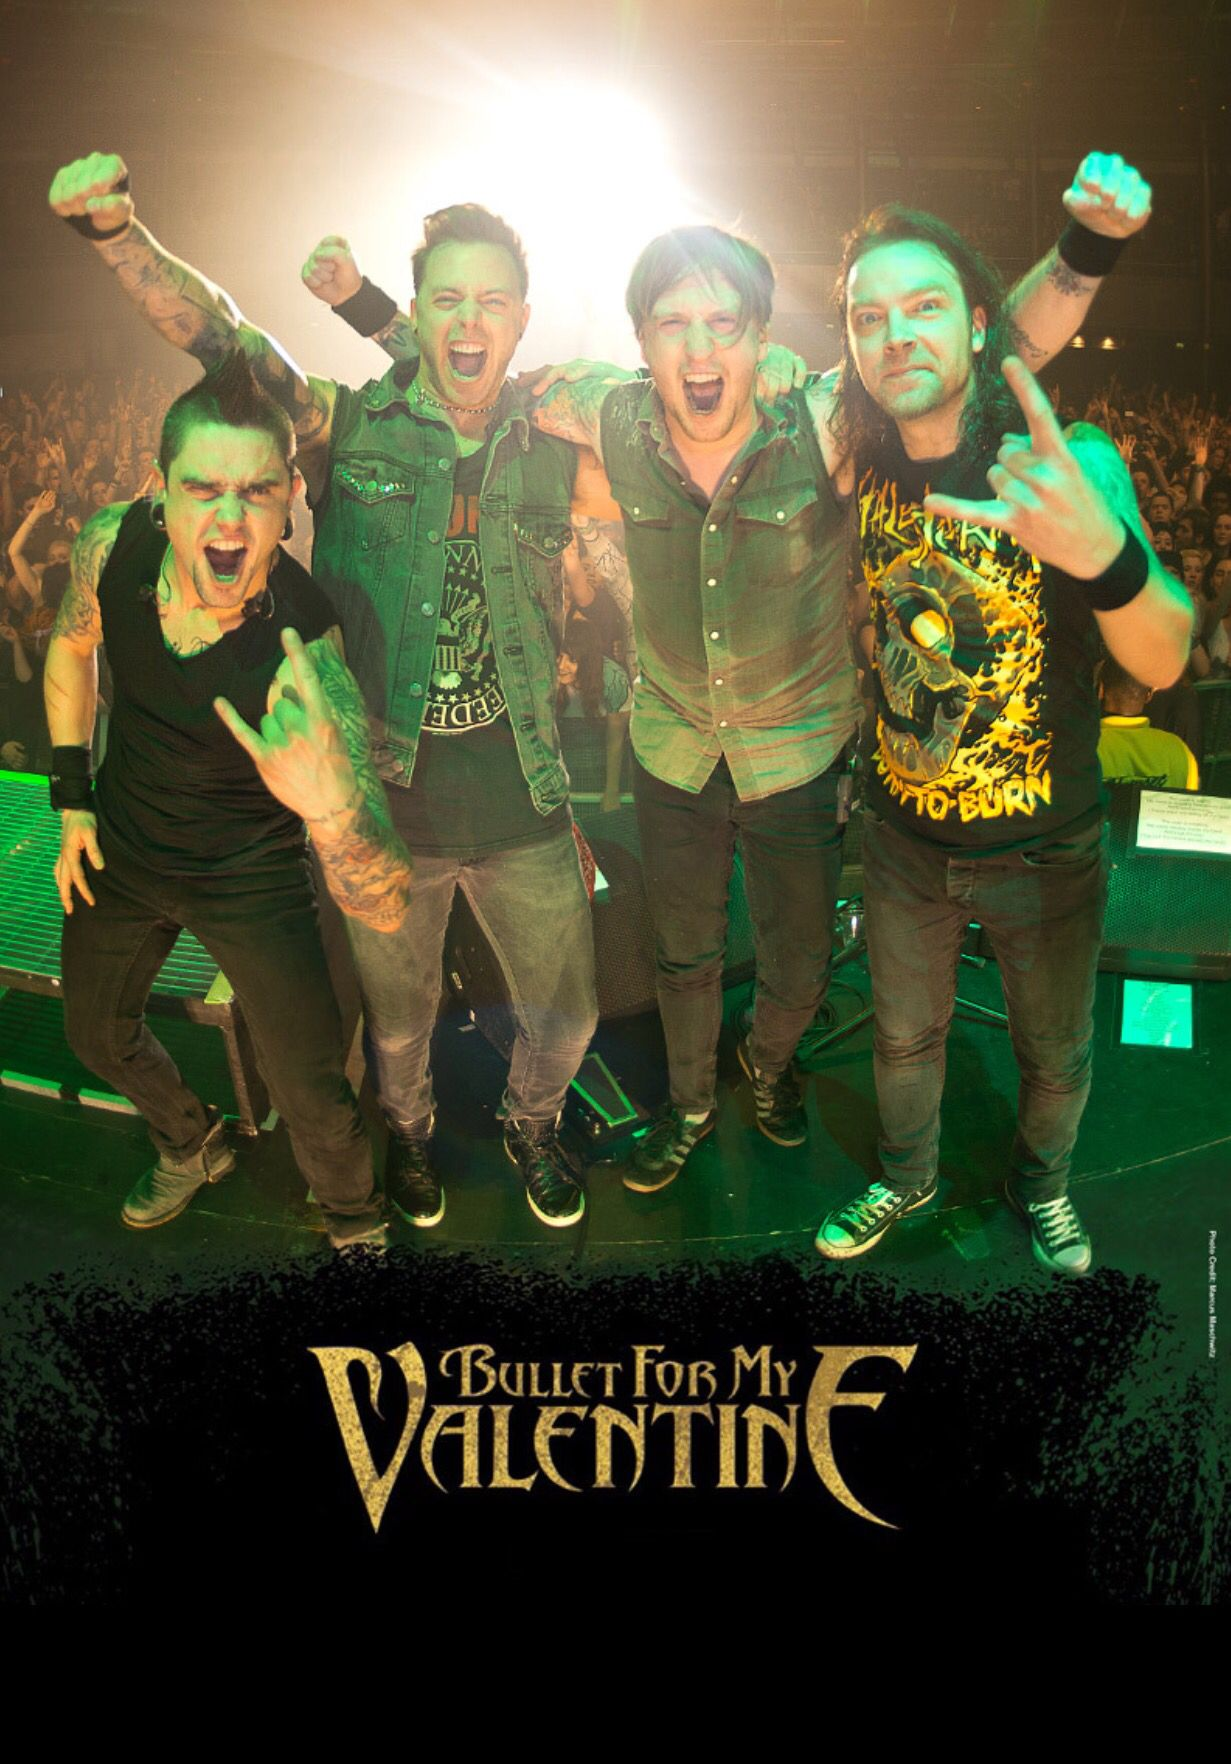 Bullet For My Valentine ☠